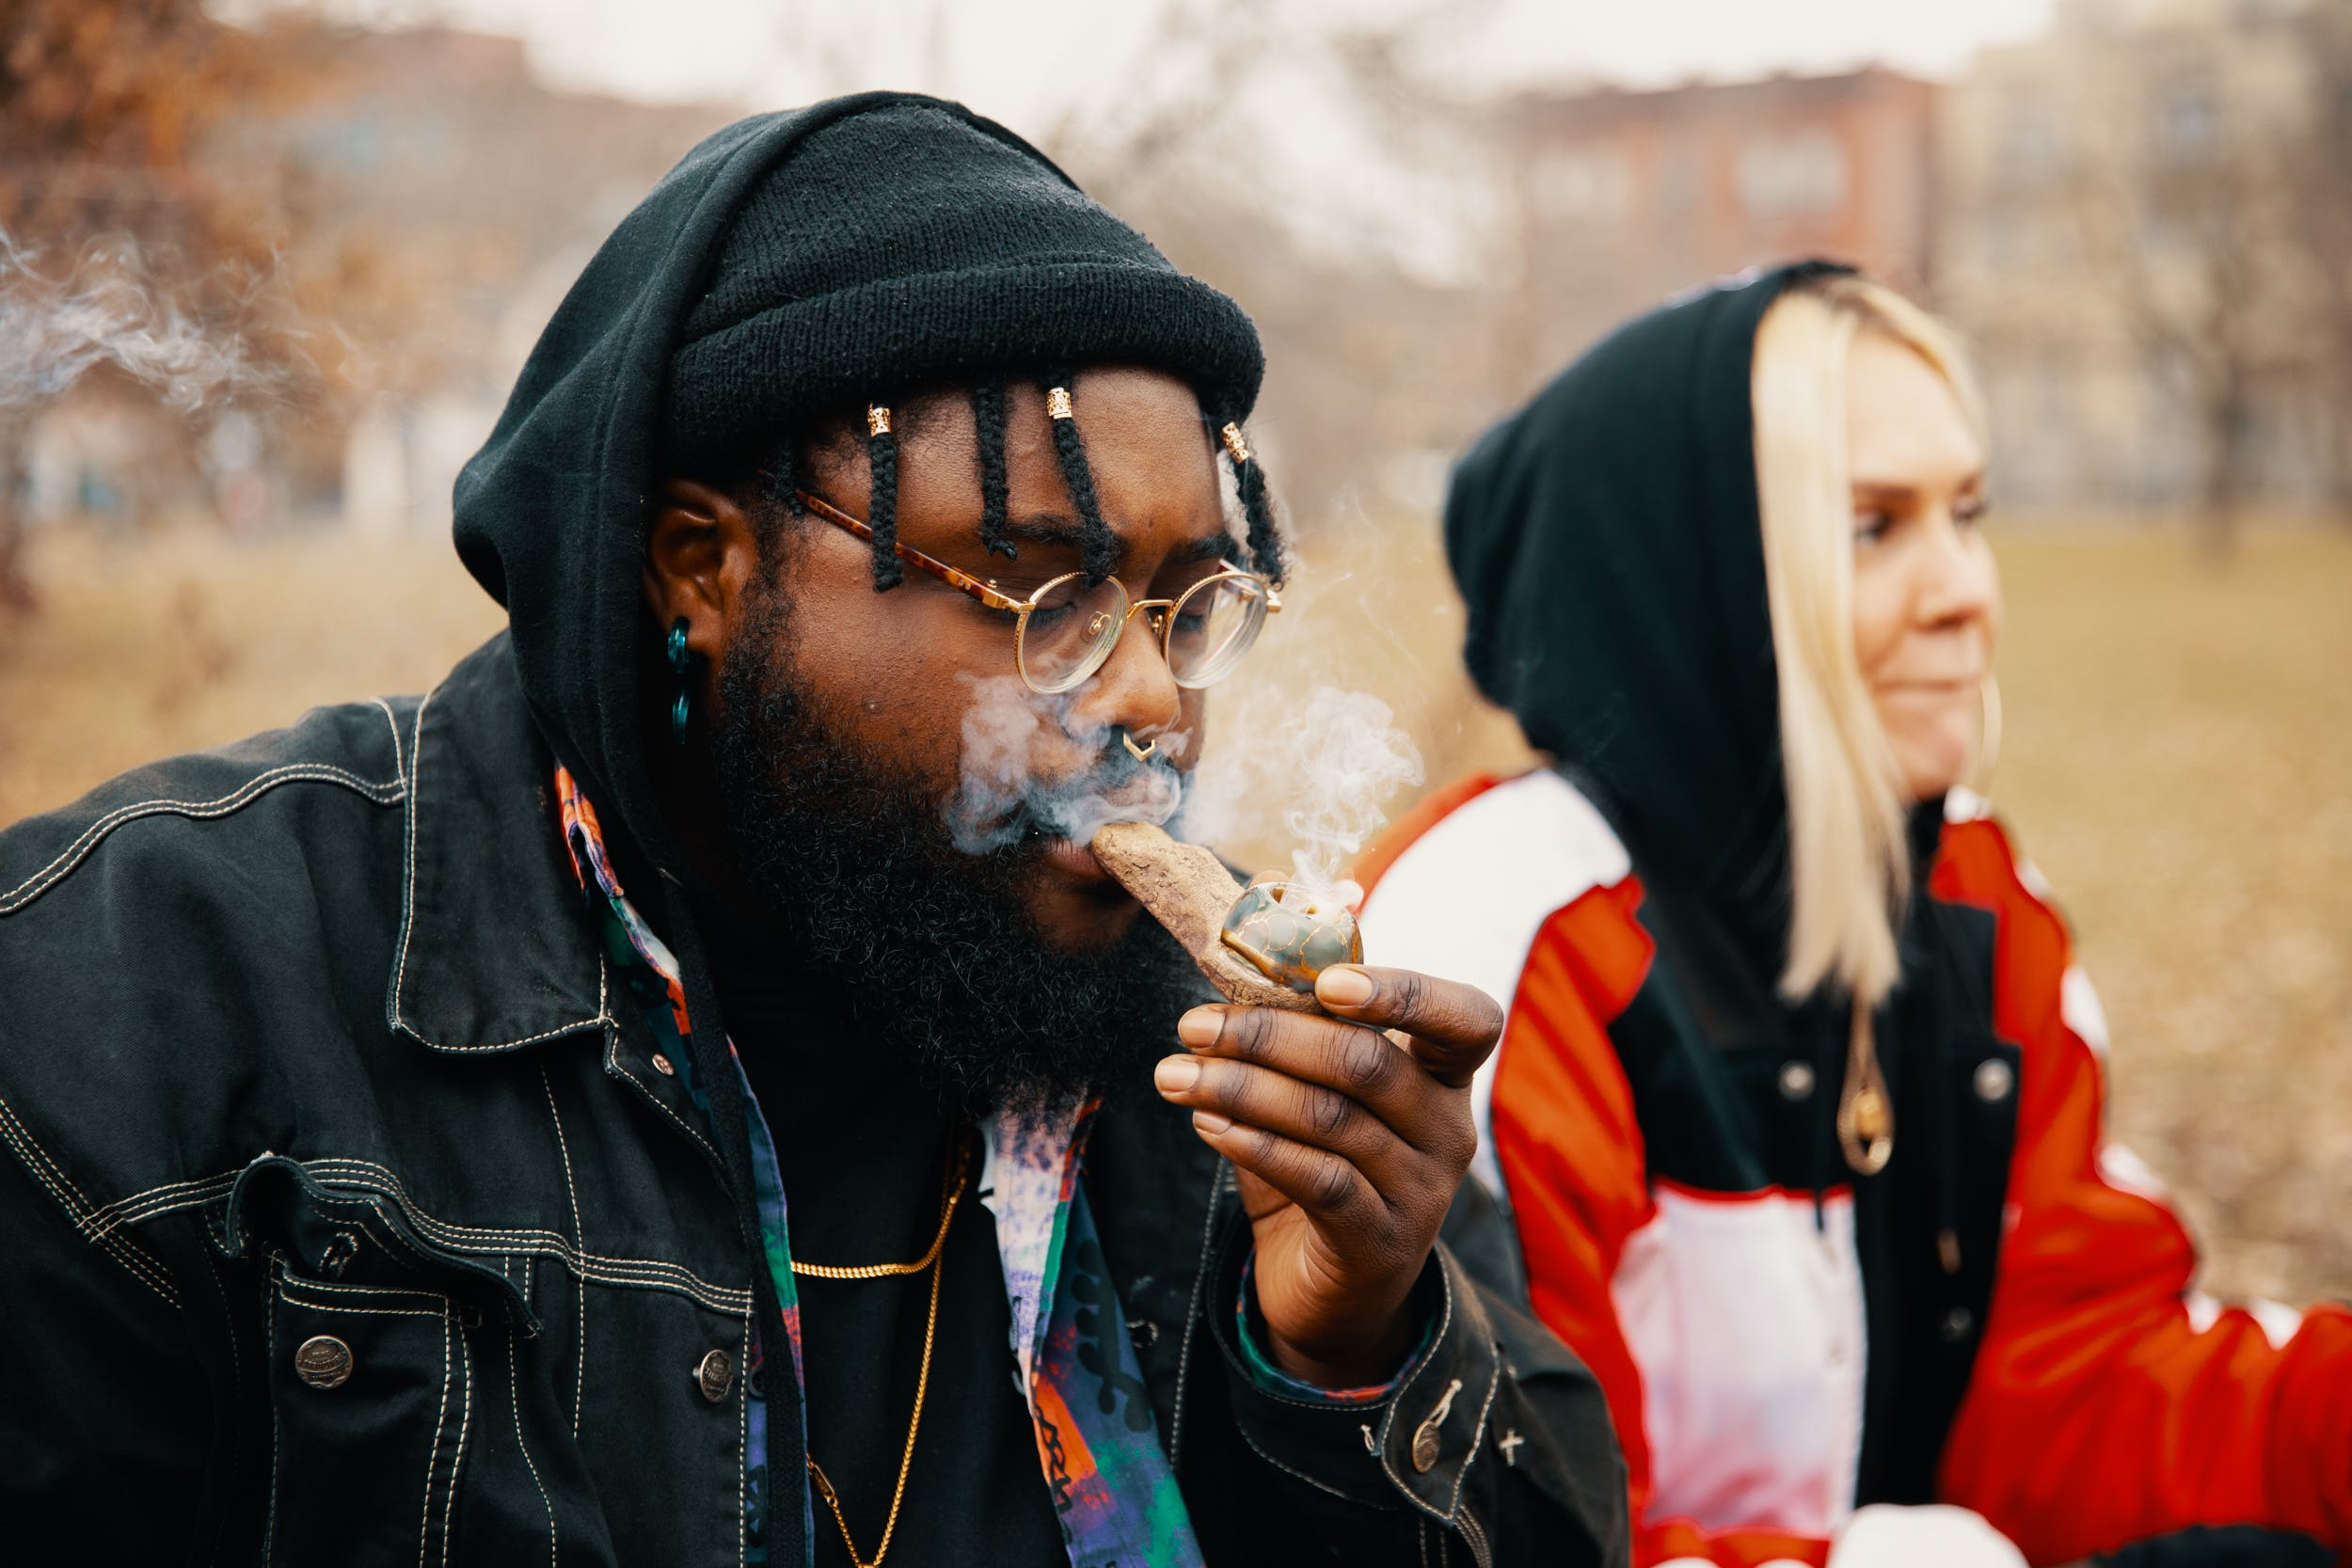 A man and a woman use a pipe after learning how to smoke bubble hash